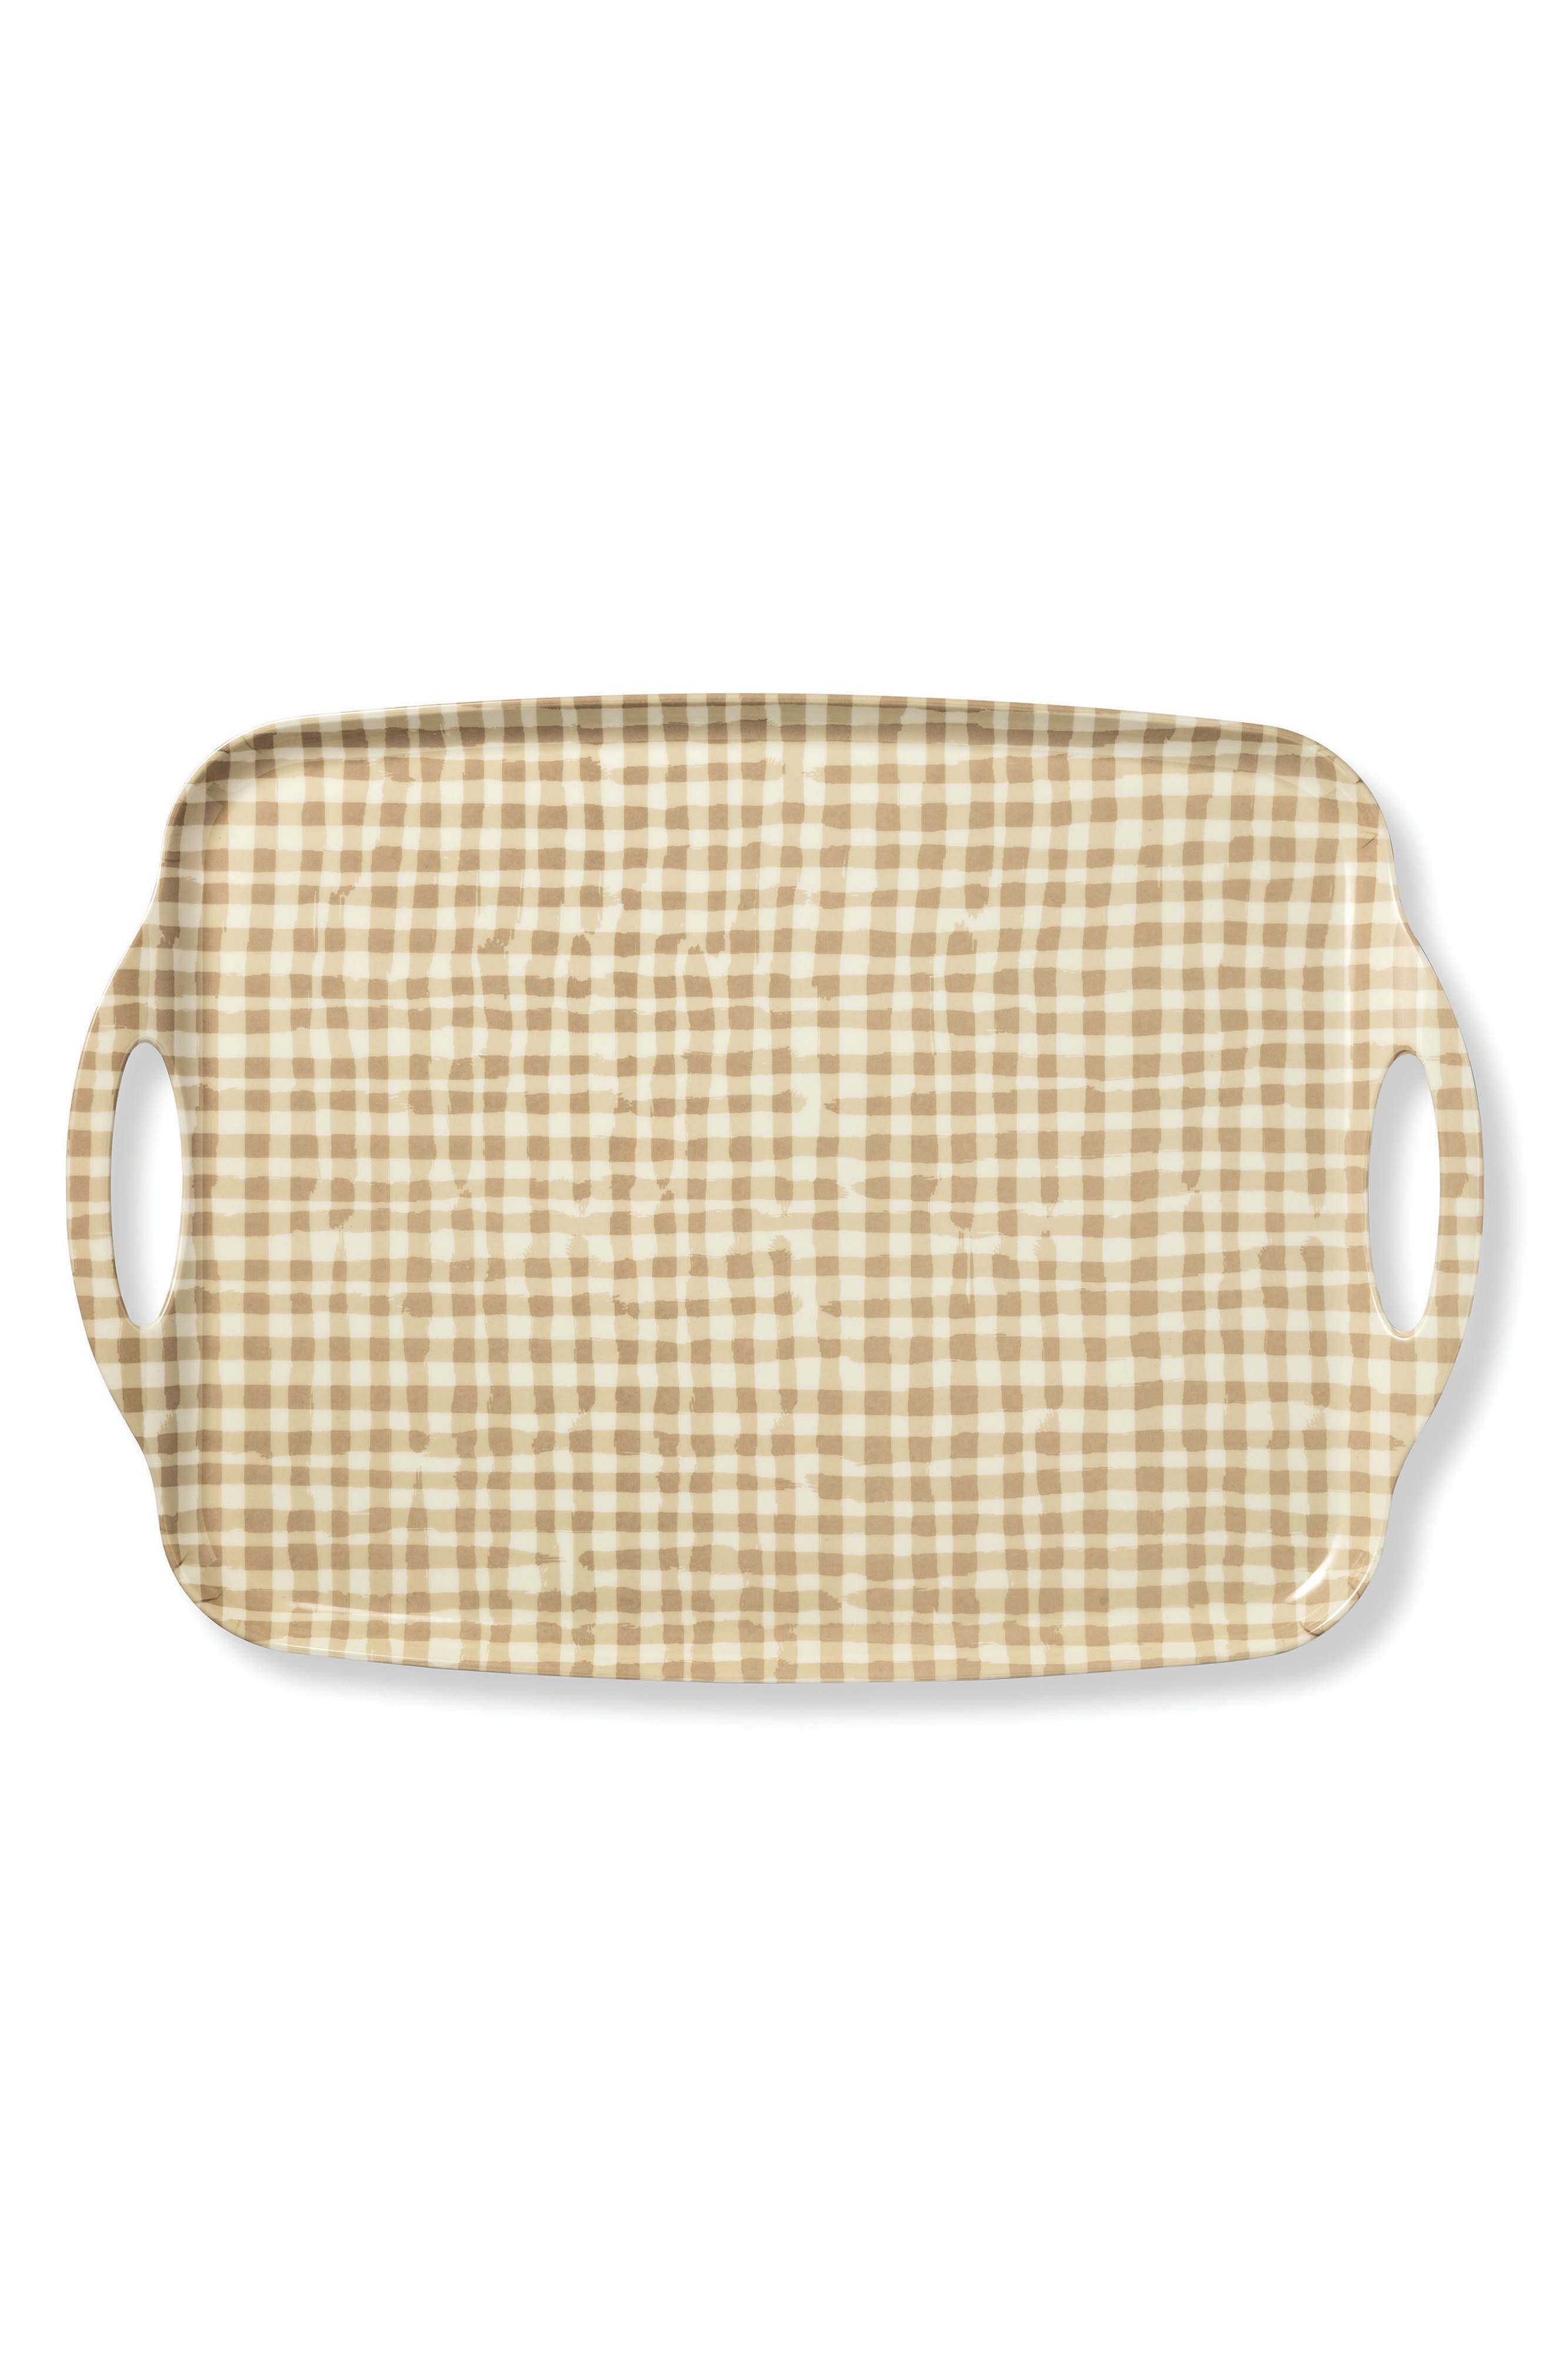 gingham serving tray,                             Main thumbnail 1, color,                             Gingham